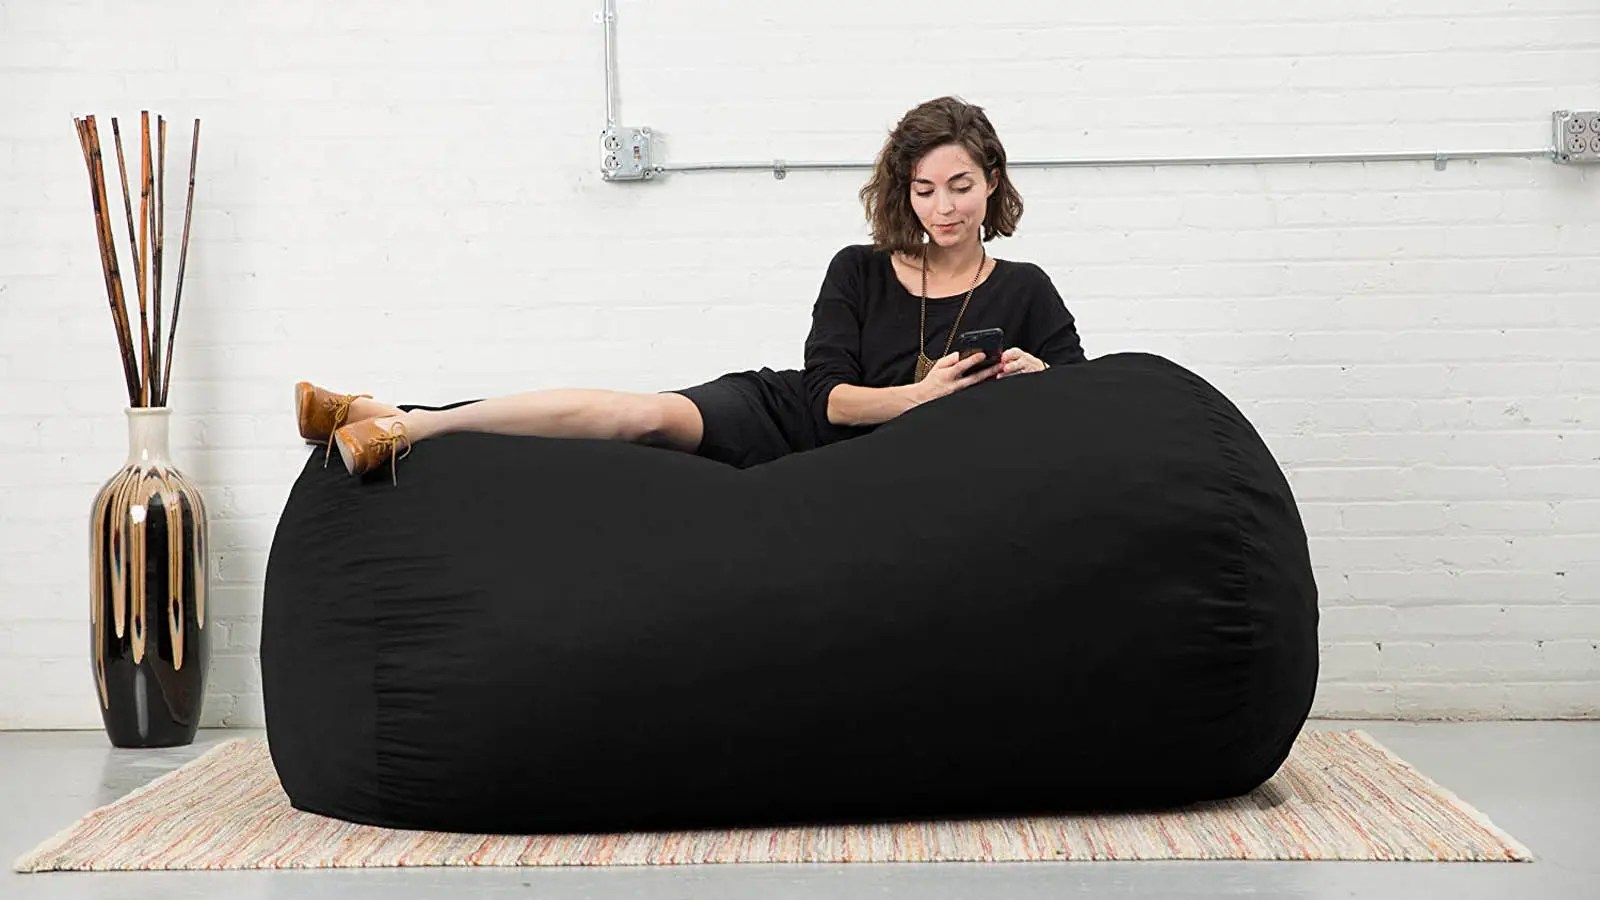 Bean Bags Chair The Best Large Bean Bag Chairs For Your Rec Room Dorm Room And